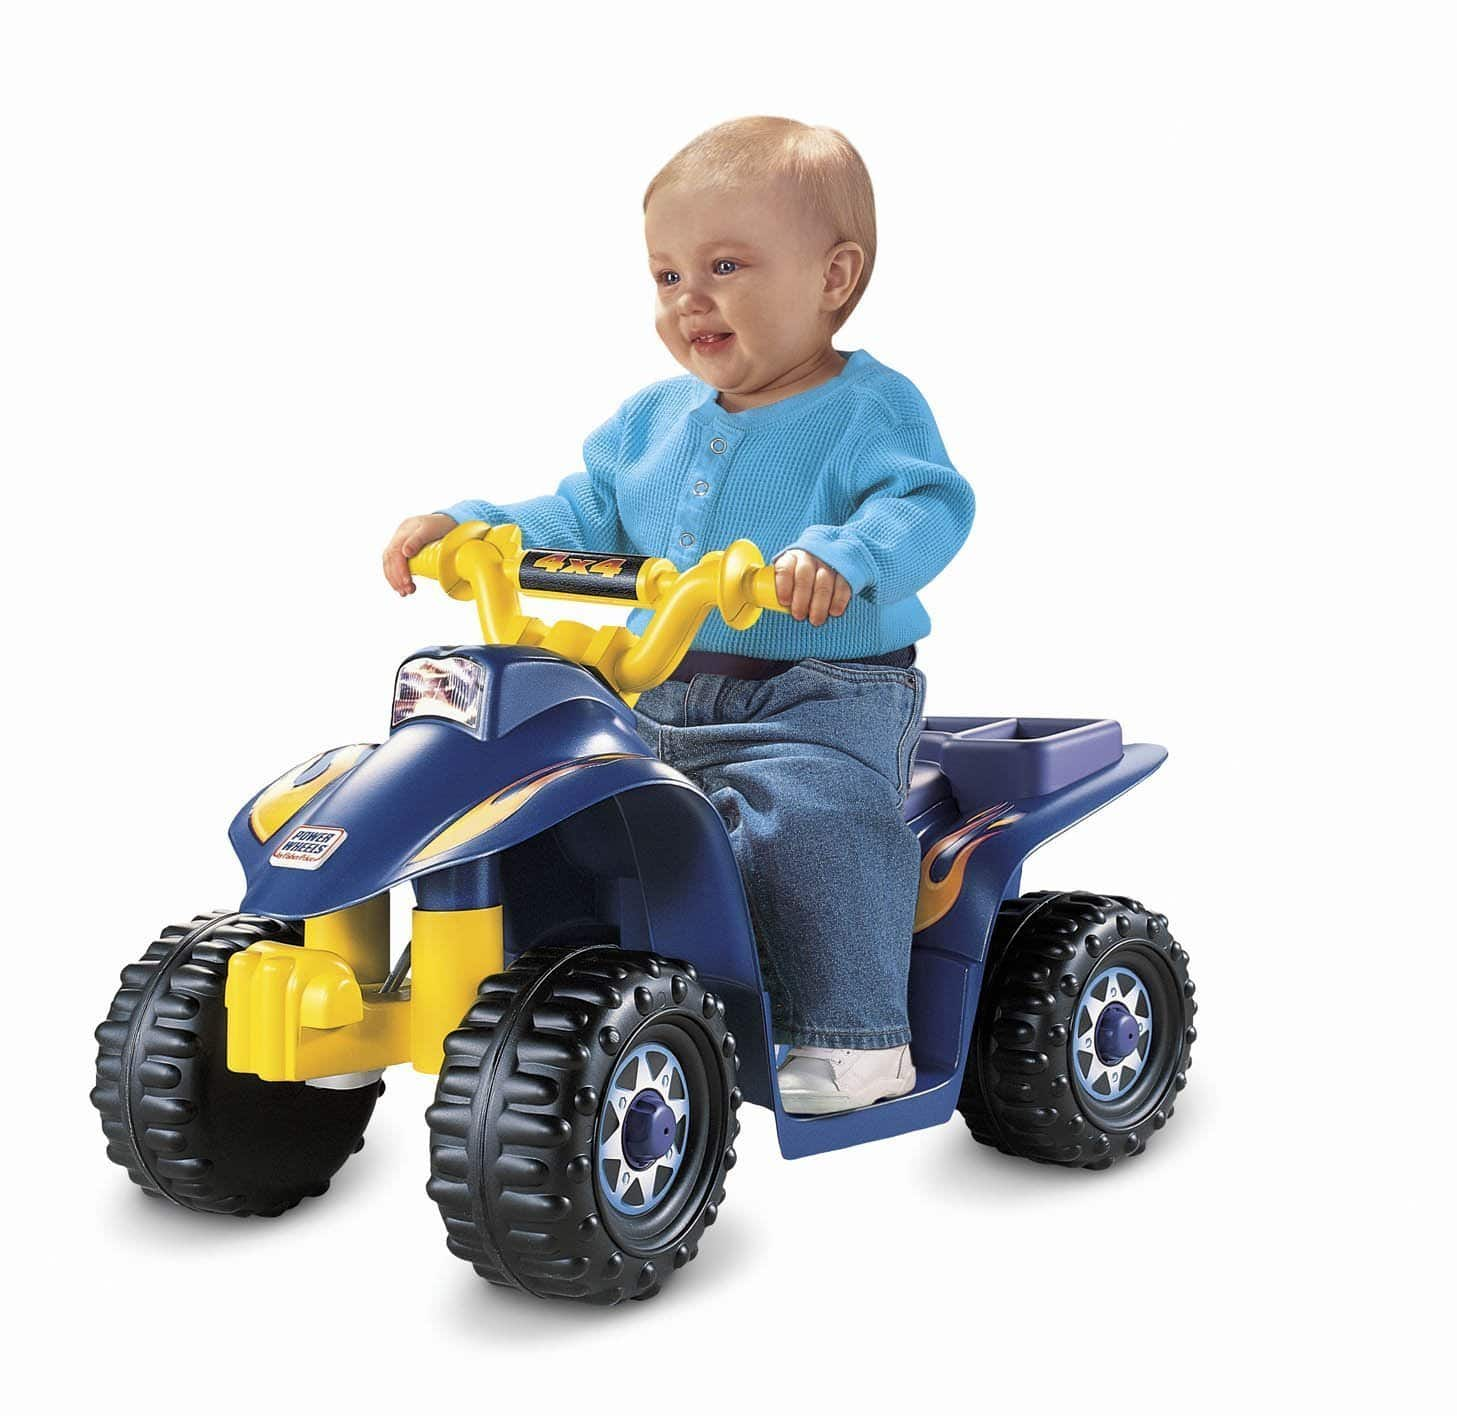 Fisher-Price Power Wheels Vehicles: Lil' Quad  $55 & More + Free S&H